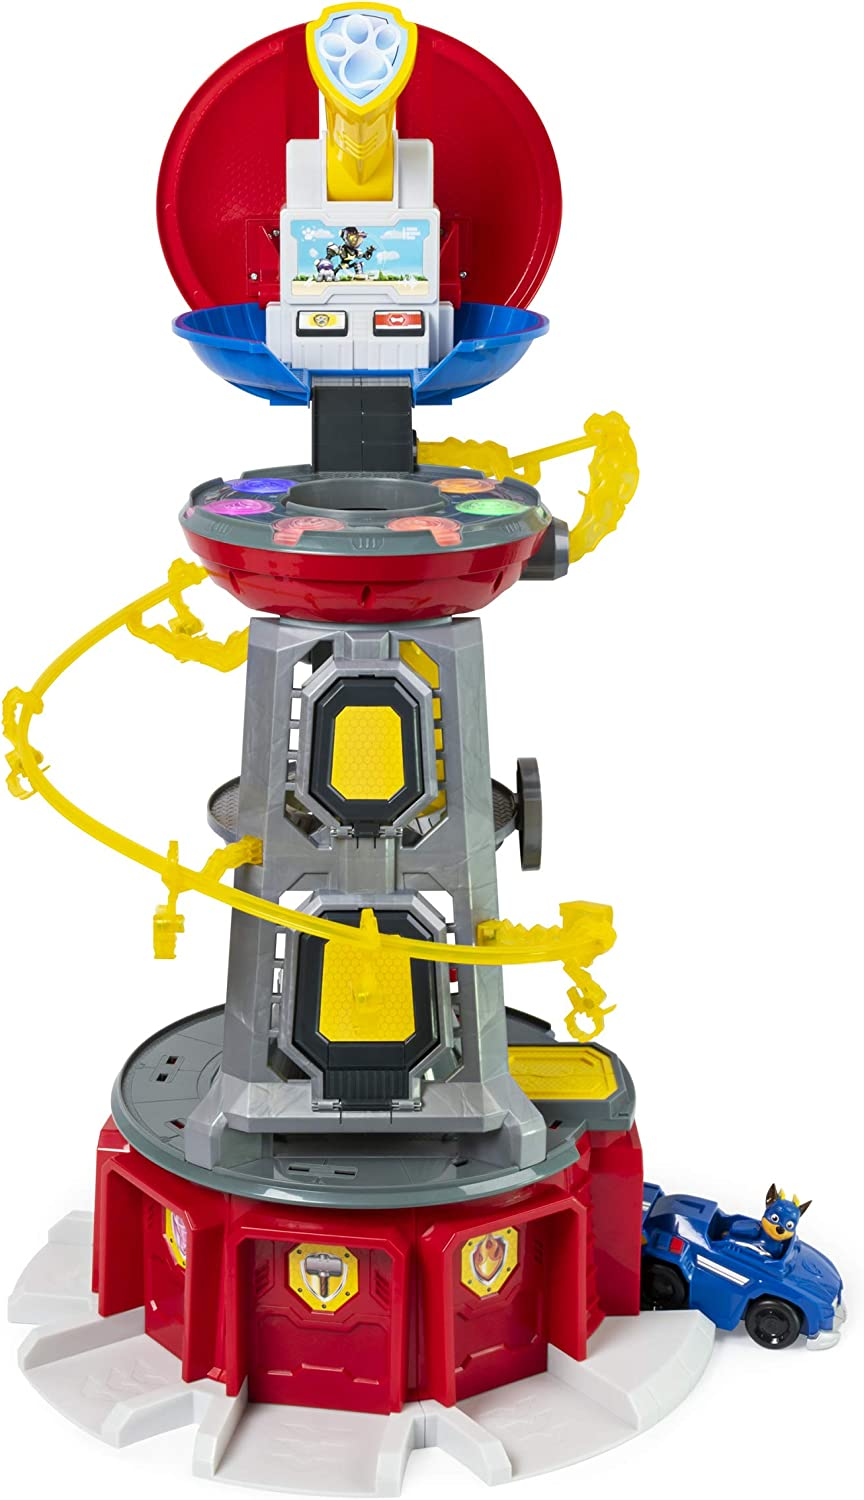 Nickelodeon Paw Patrol, Mighty Pups Super Paws Lookout Tower Playset with Lights & Sounds, for Ages 3 & Up, Multicolor